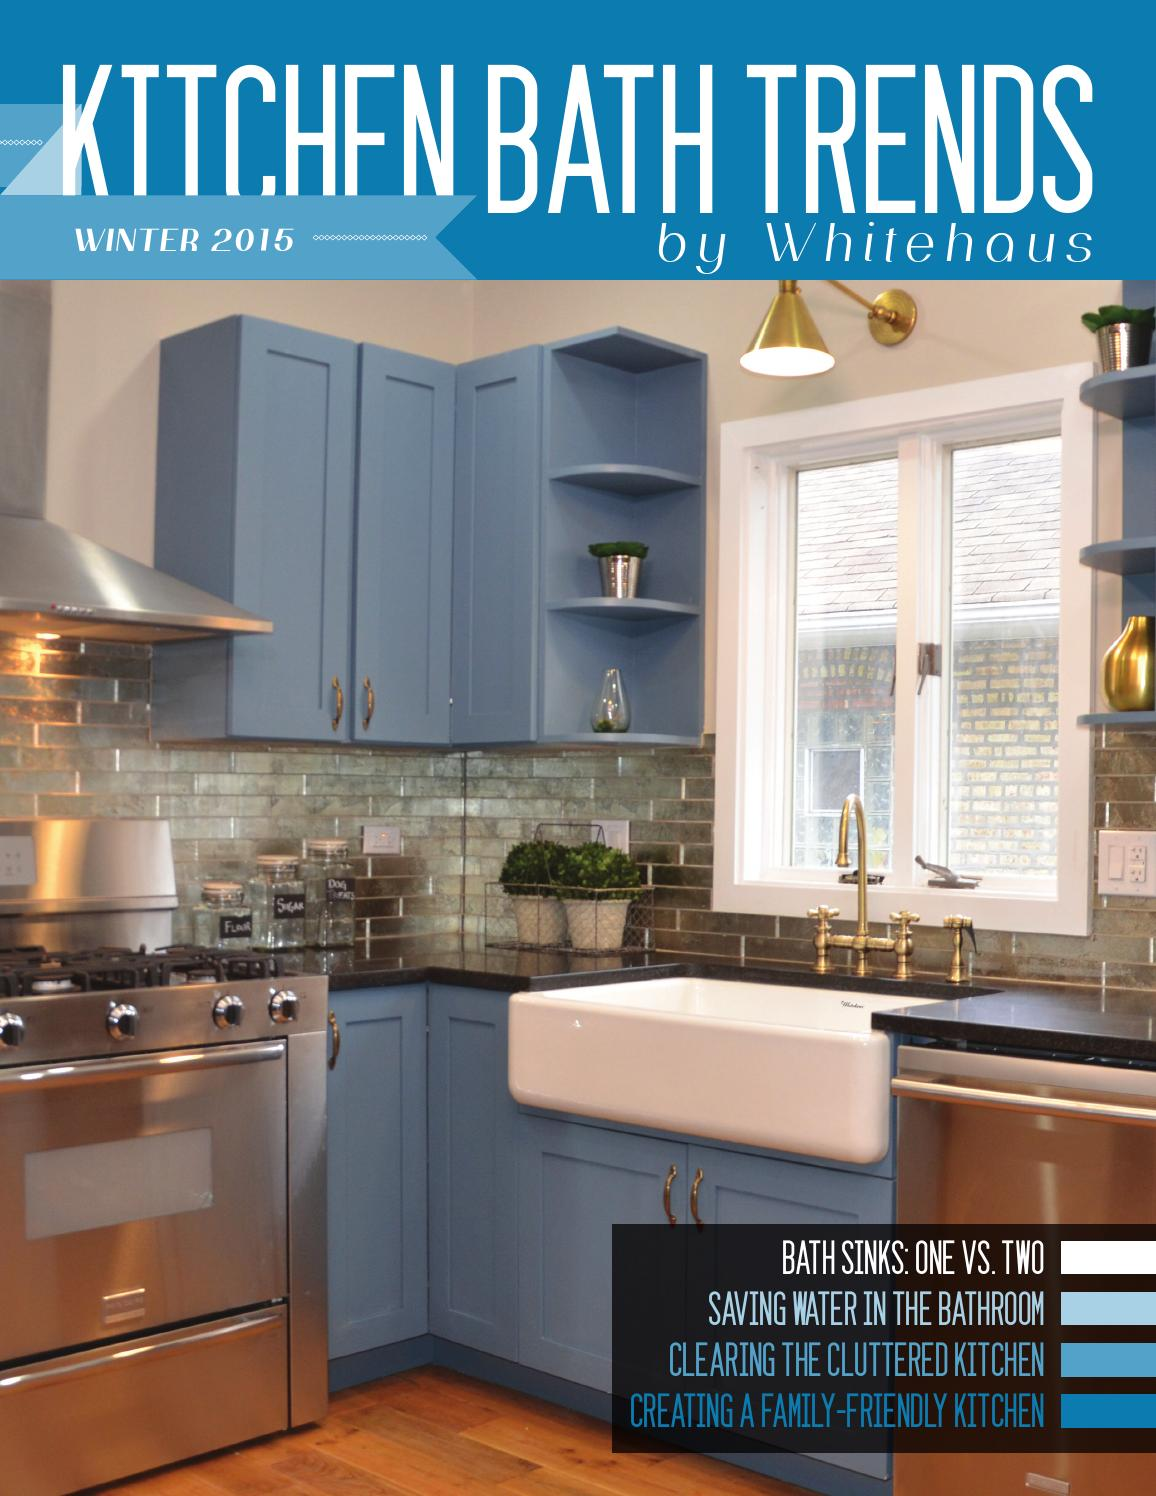 Kitchen bath trends magazine winter 2015 by kitchen bath for Trend bathroom and kitchen